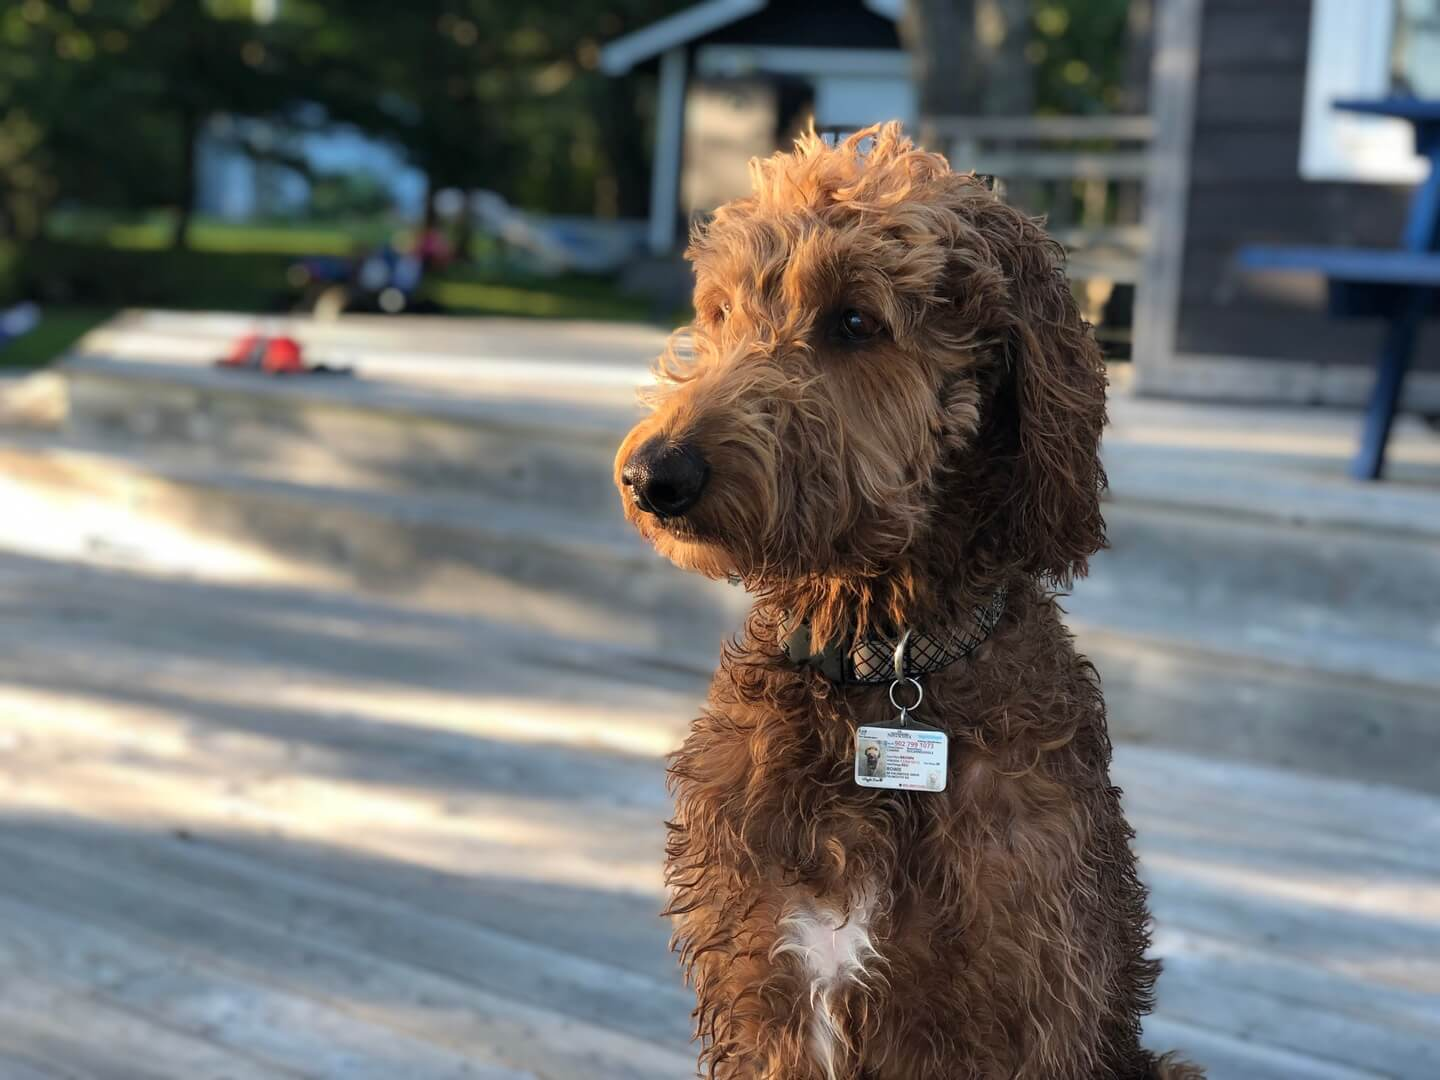 dog wearing a tag